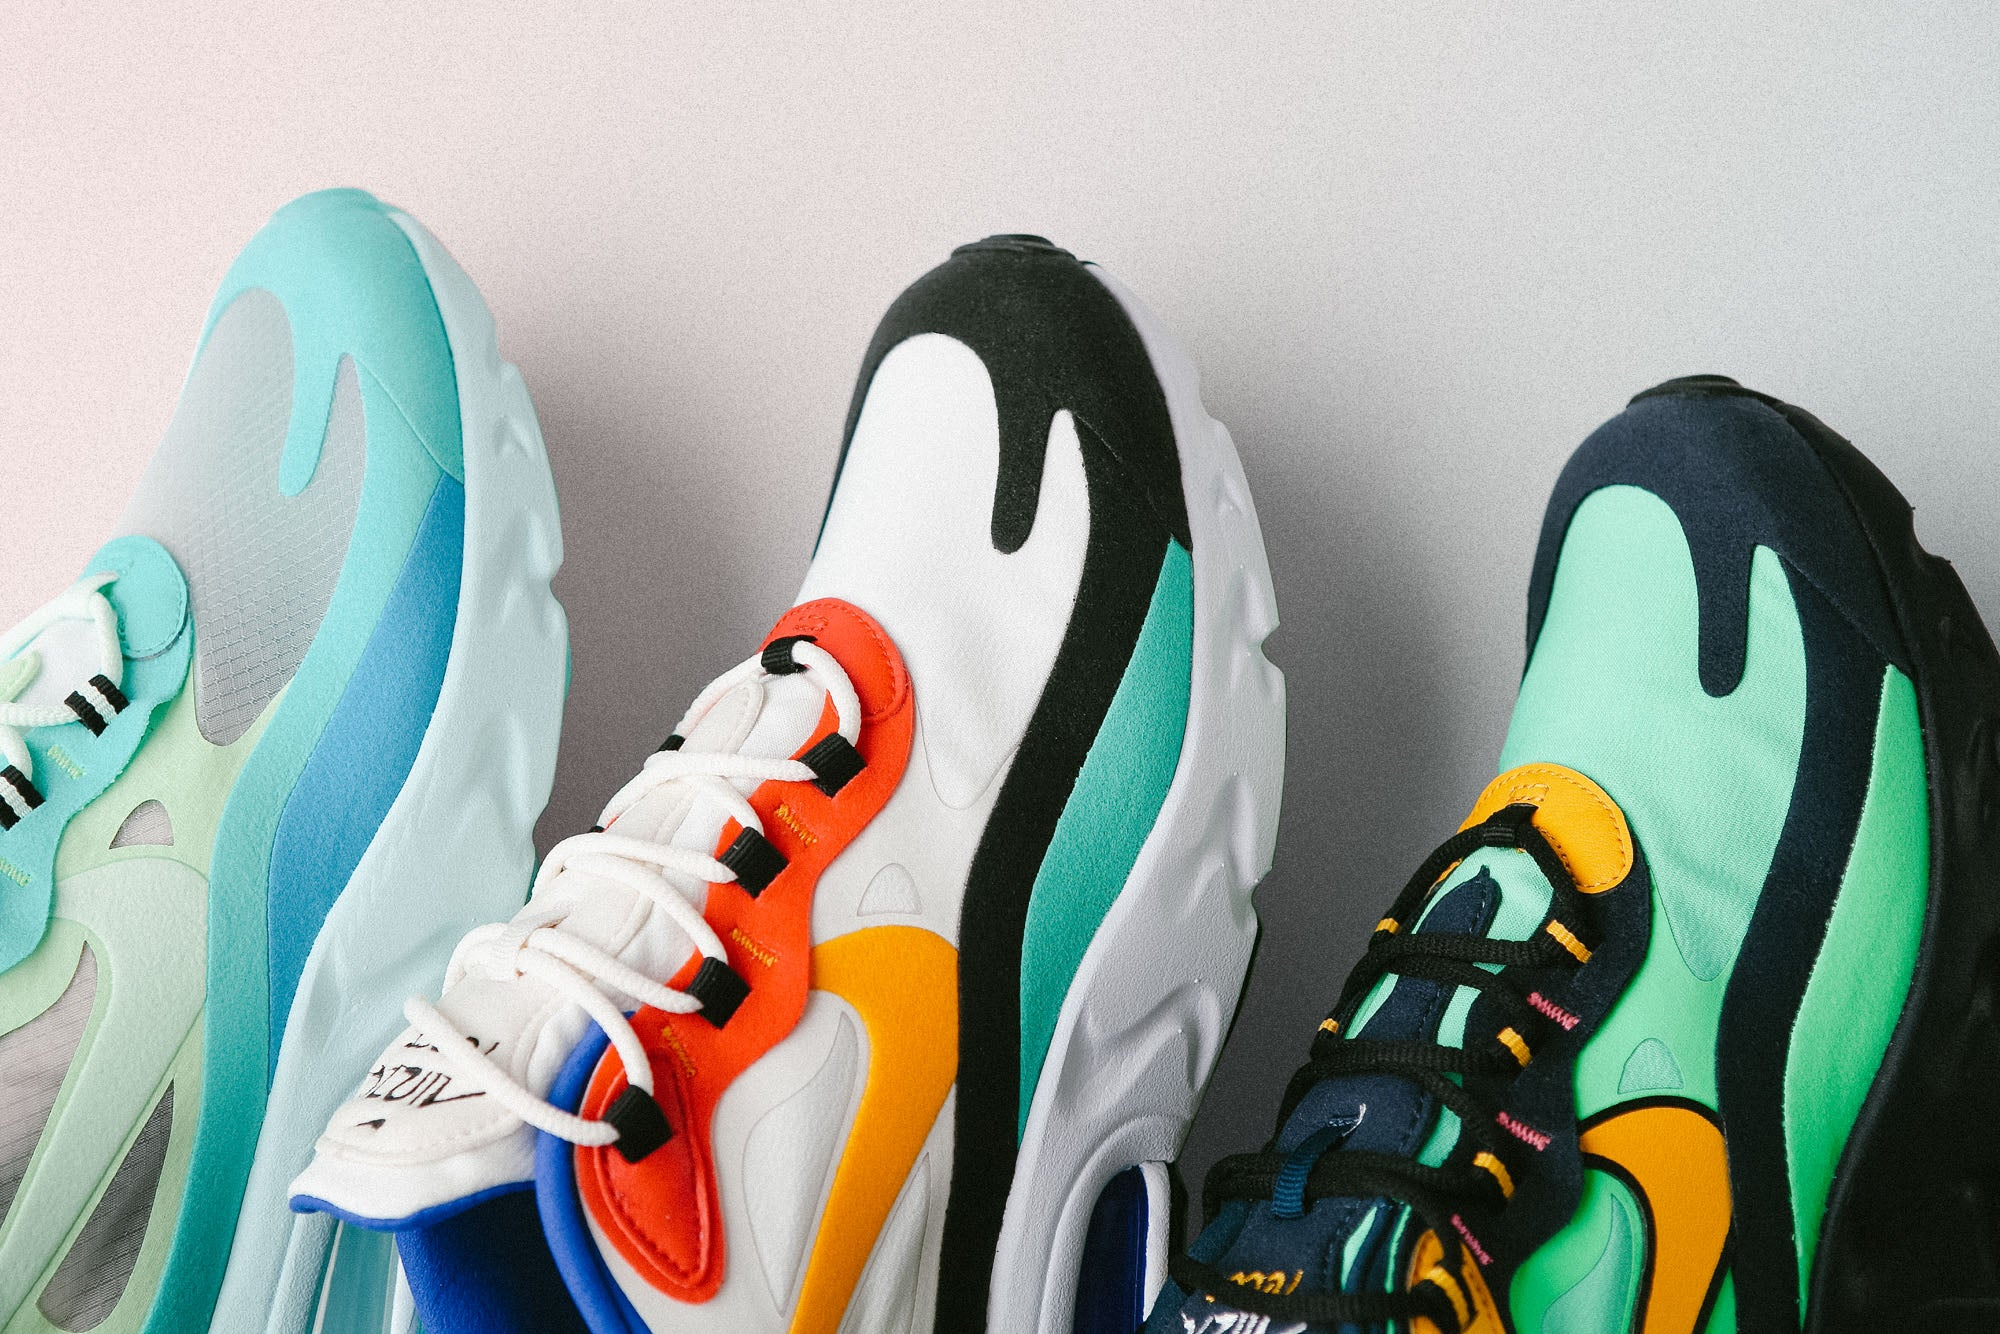 NSW Fall 19 : The Story of the Nike Air Max 270 Shoes | Always in Colour